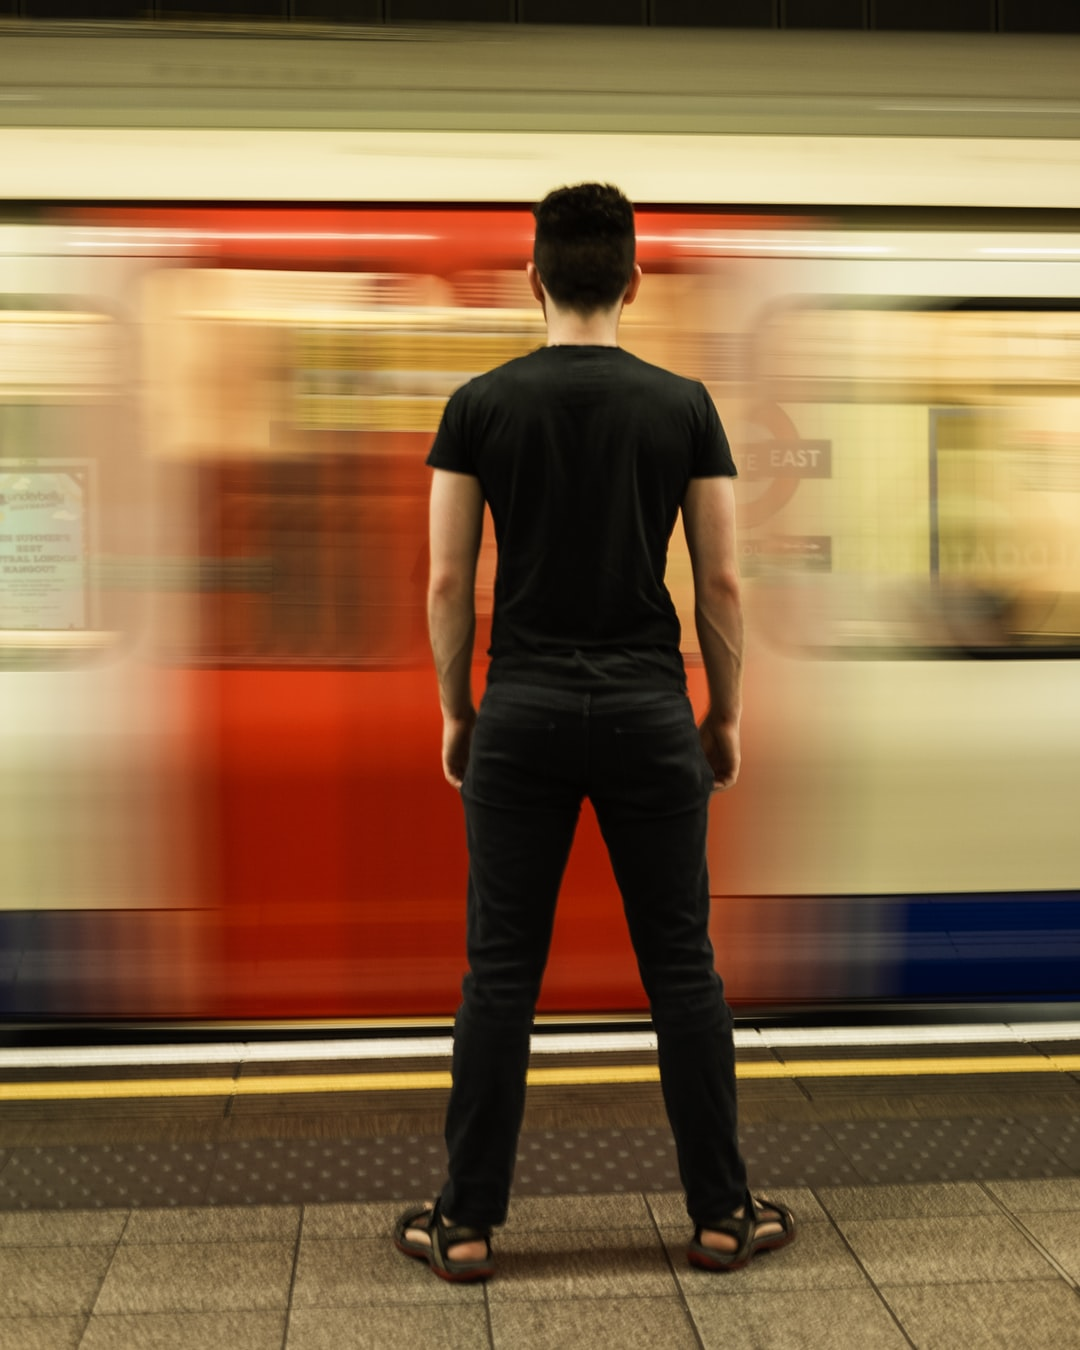 Aldgate East underground station, experimenting with shutter speeds and my friend as a model.